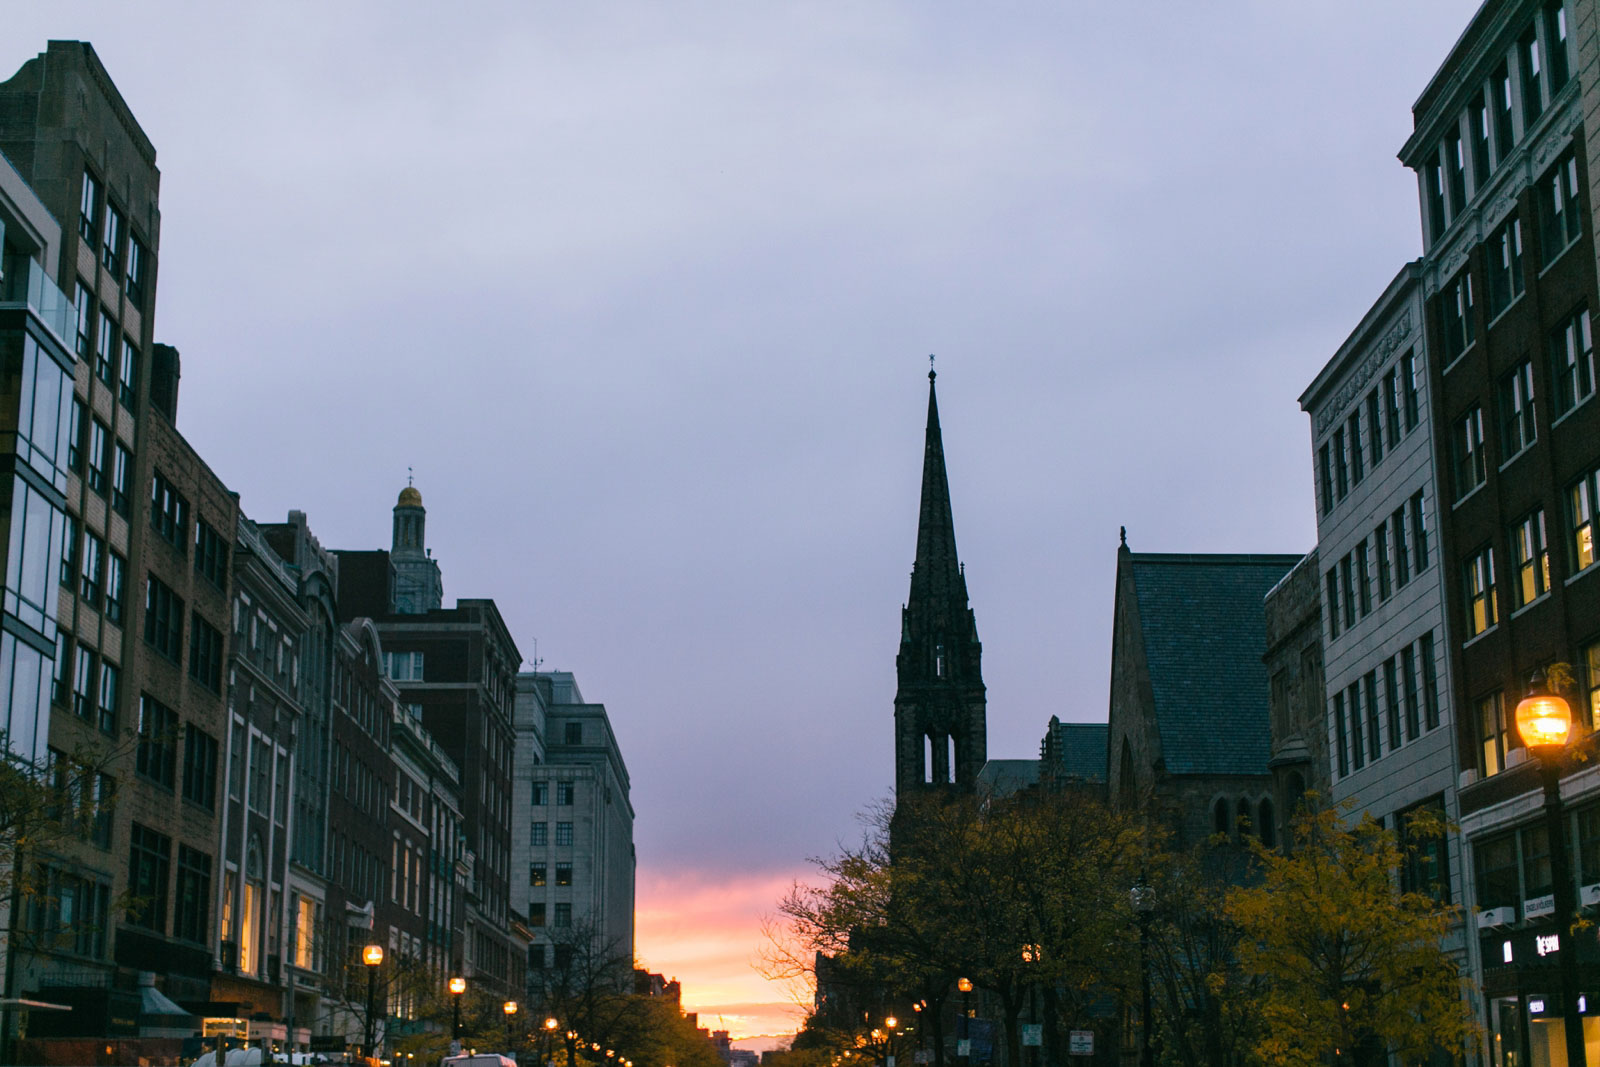 Sunset down the street in Boston's back bay neighborhood before the wedding ceremony